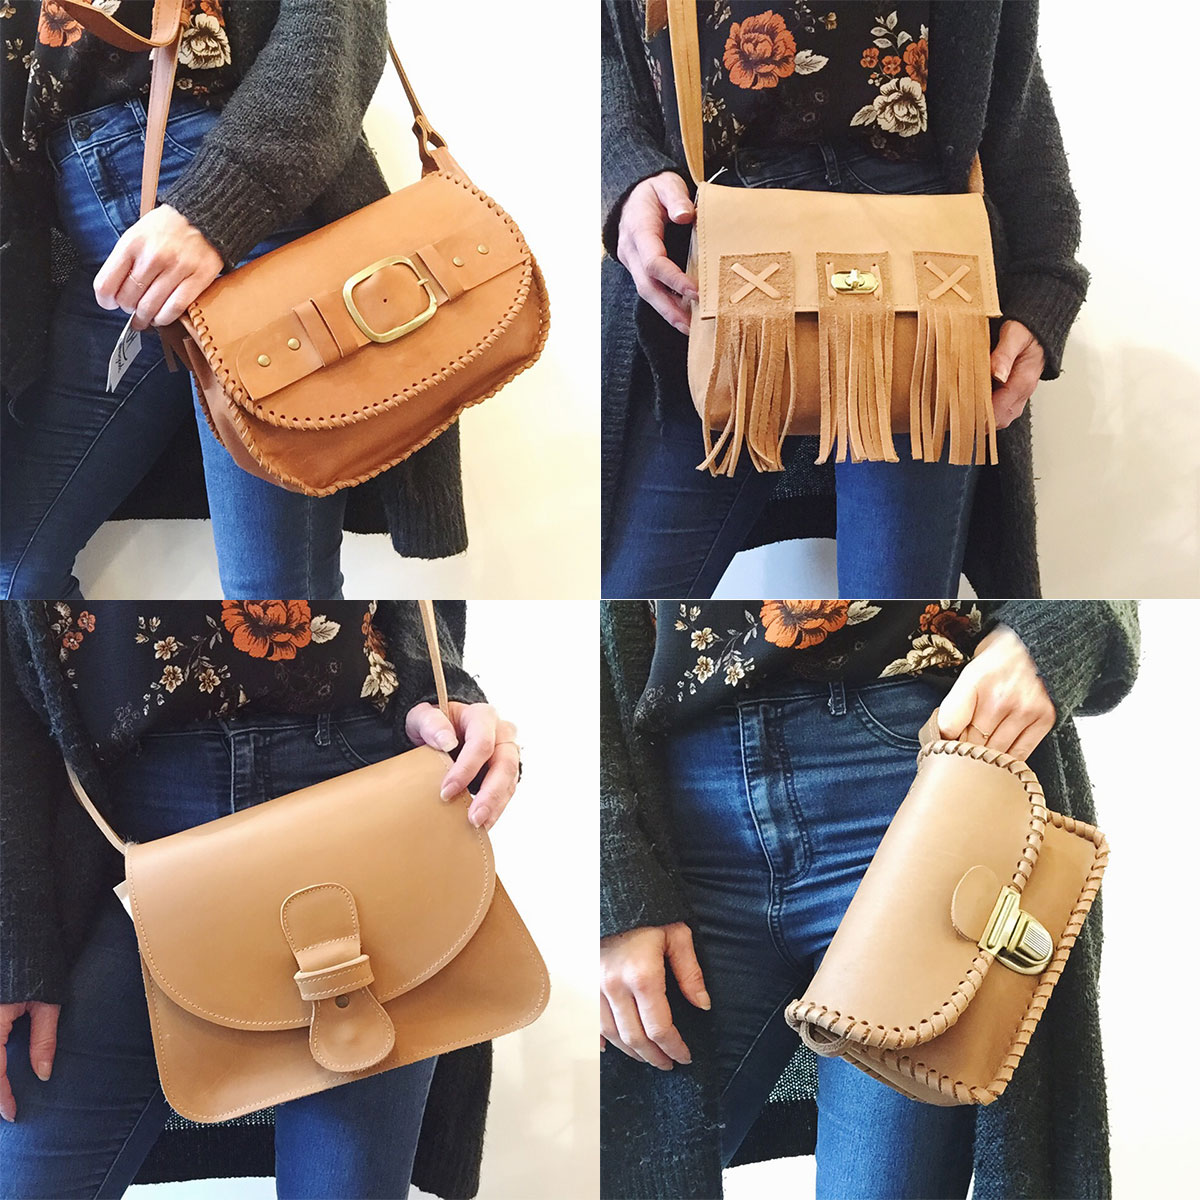 Camel colored leather bags from MH Leathergoods at Homespun: Modern Handmade